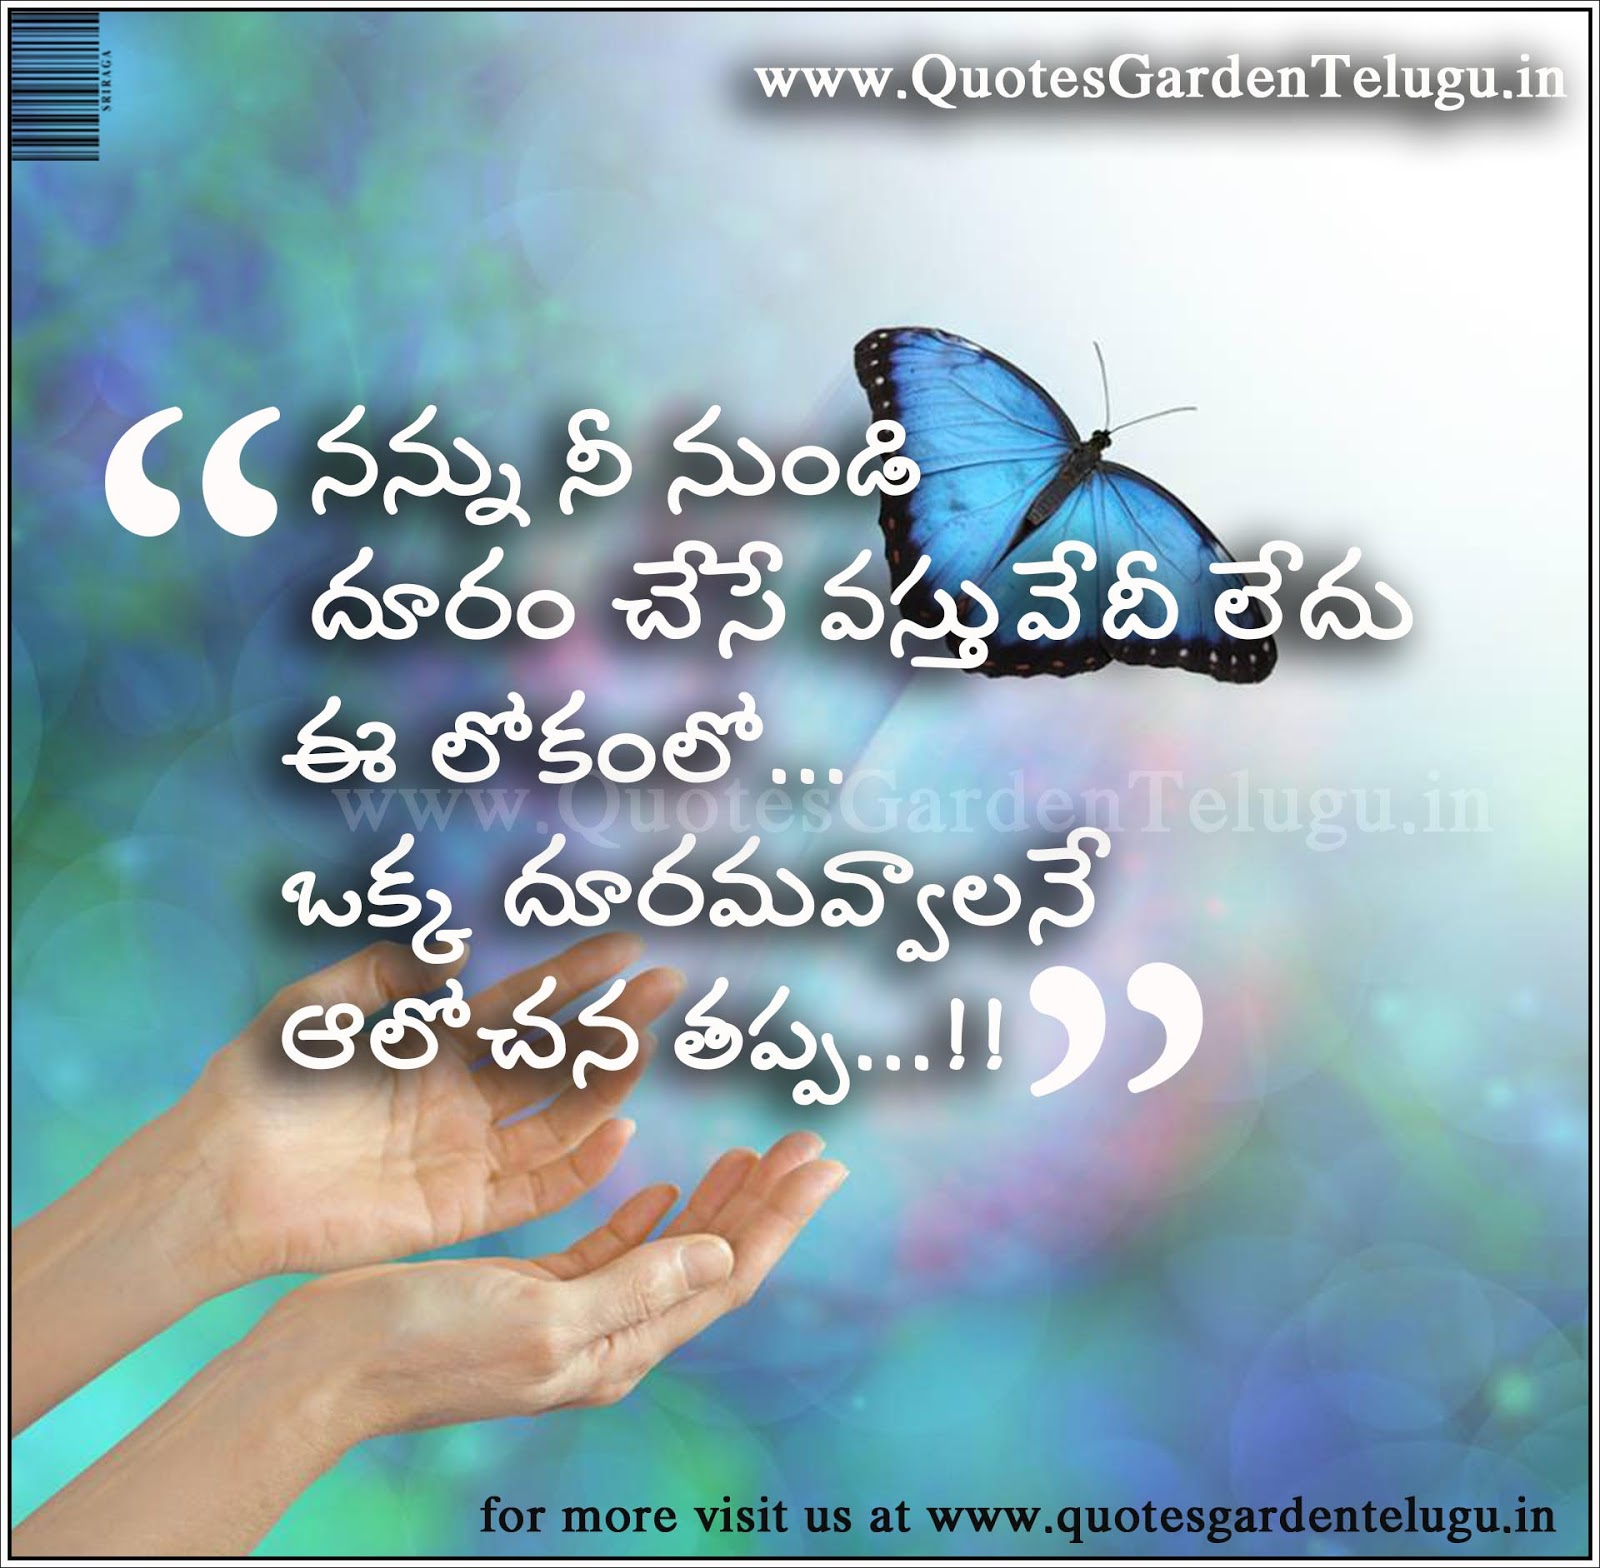 Telugu Love Quotes New Best Telugu Heart Touching Love Quotes With Hd Images 652  Quotes